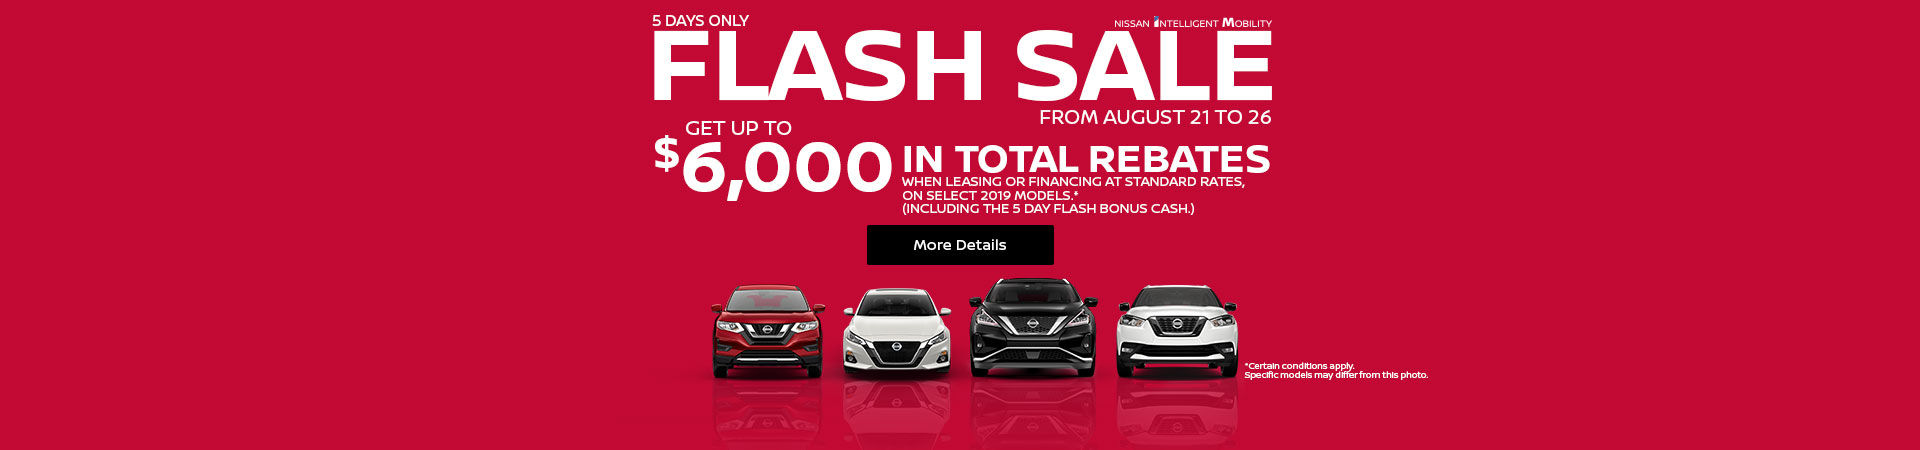 Nissan Flash Sale